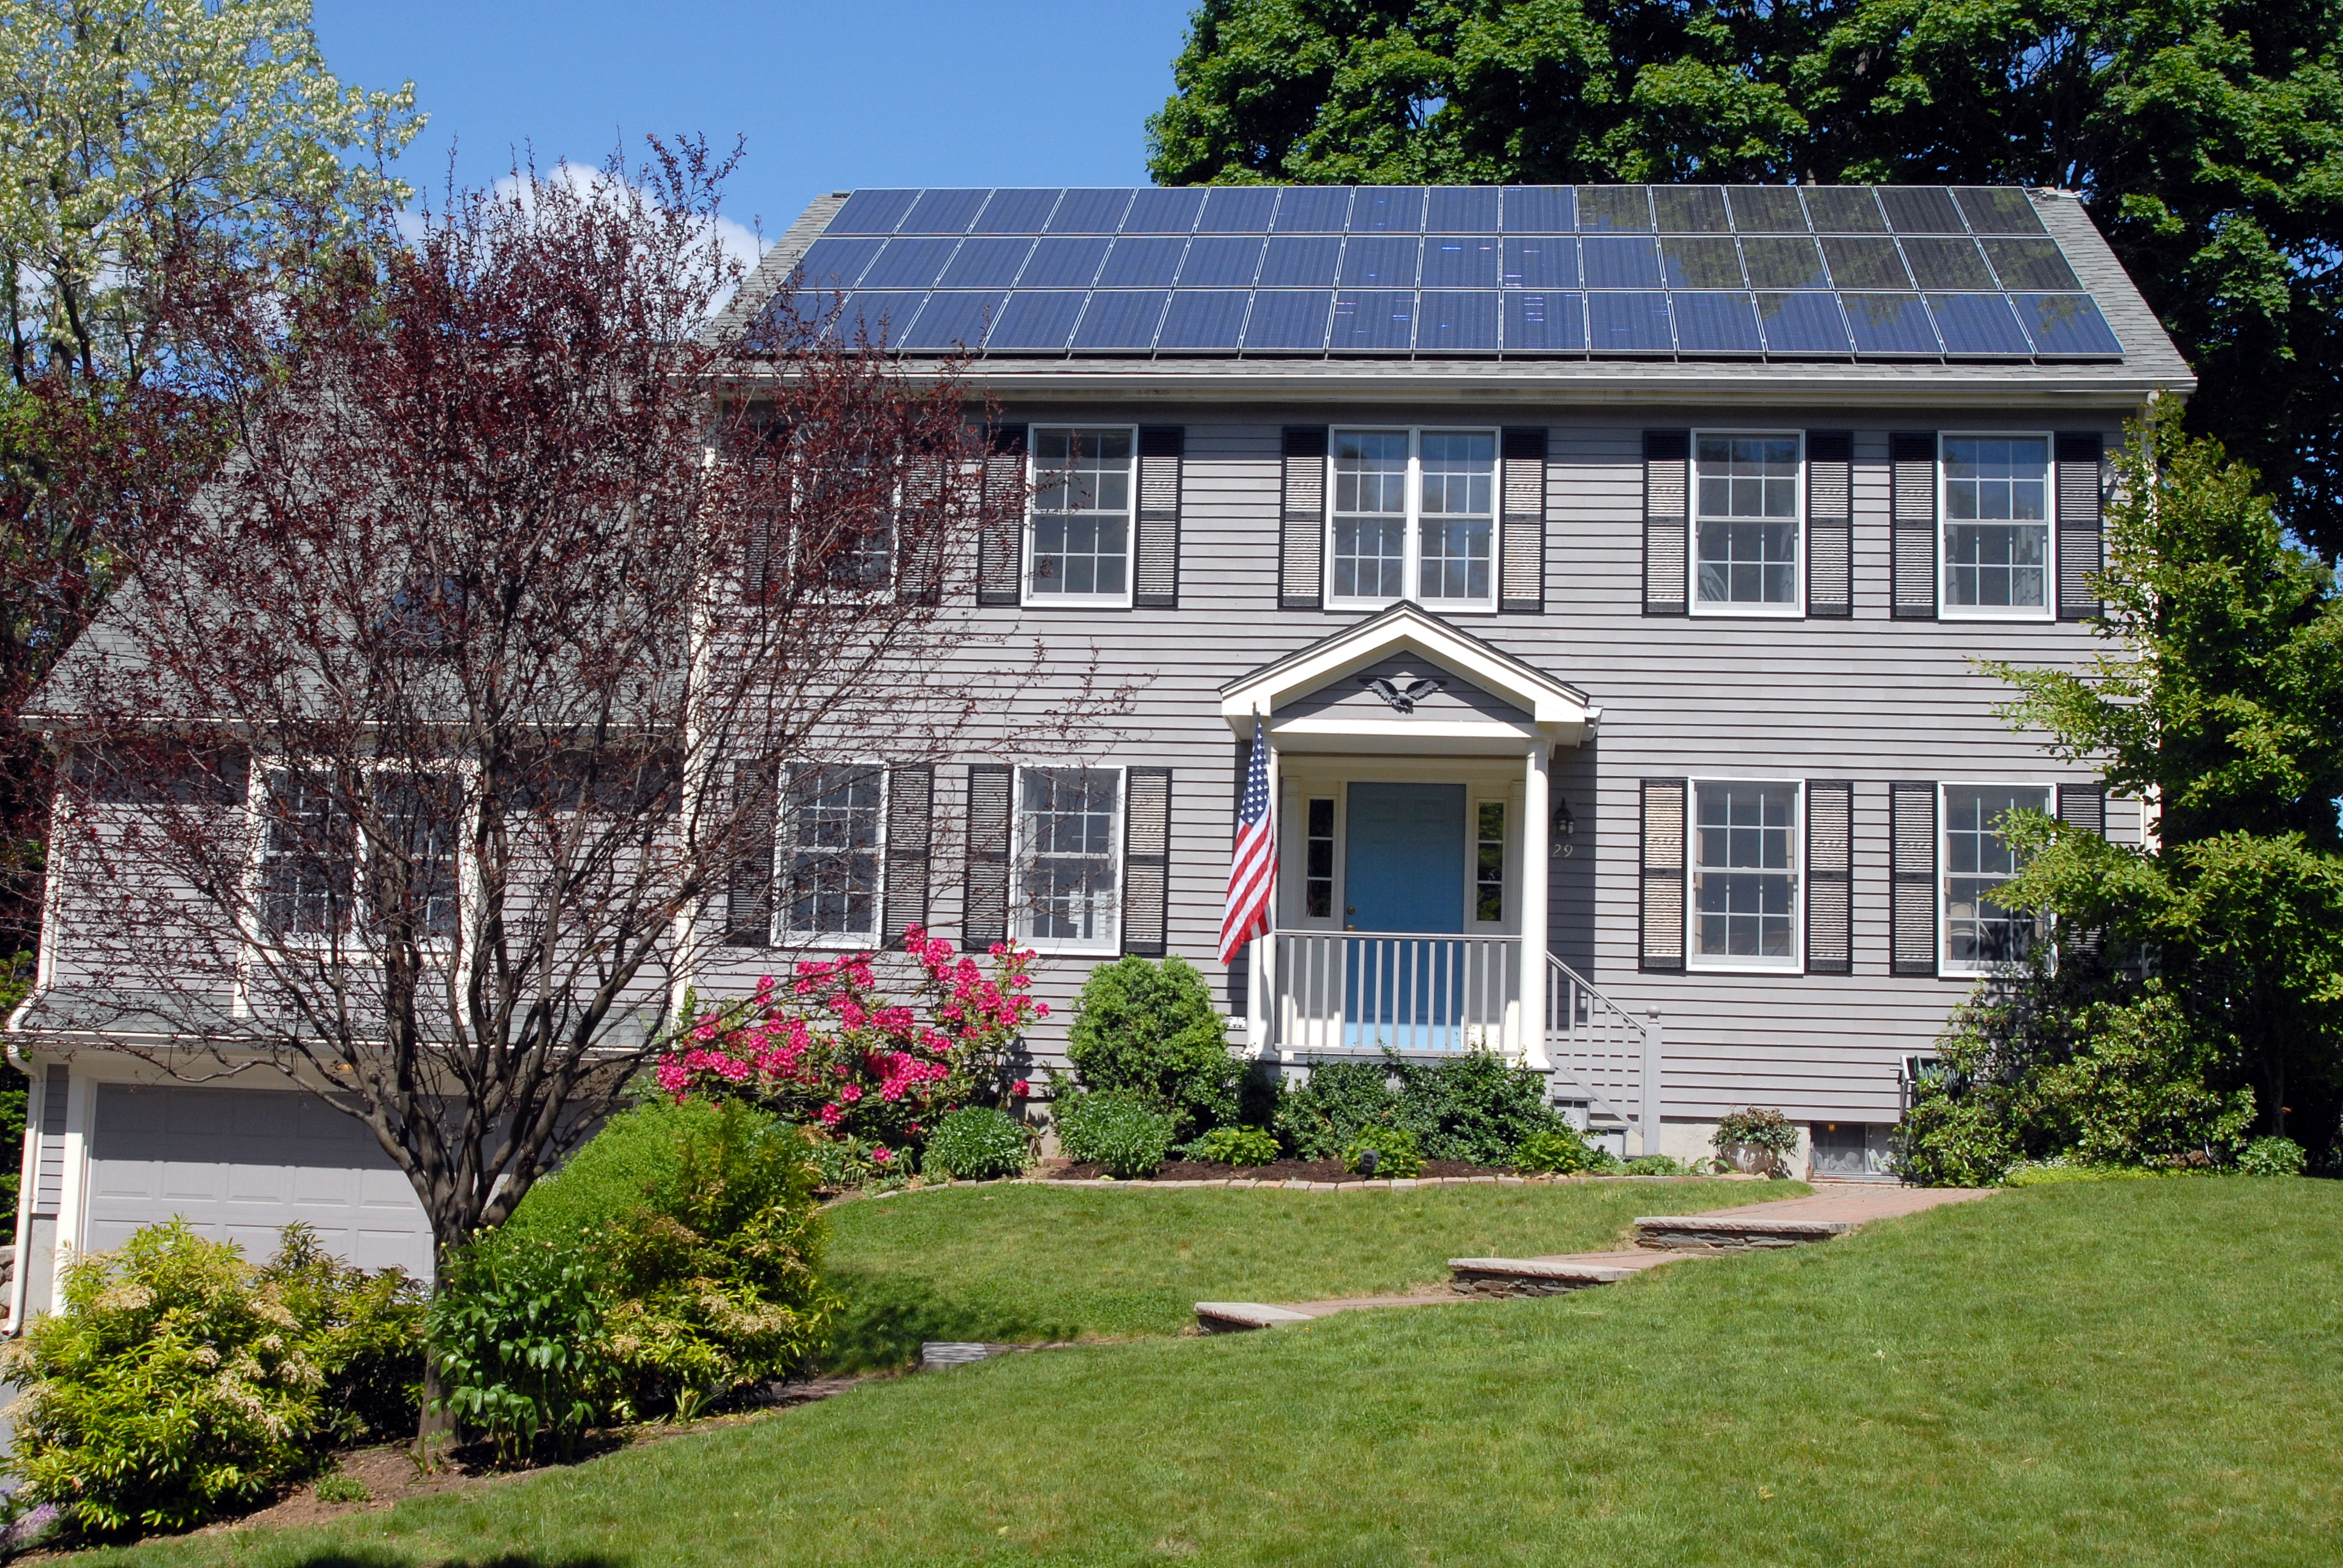 File:Solar panels on house roof.jpg - Wikipedia, the free encyclopedia